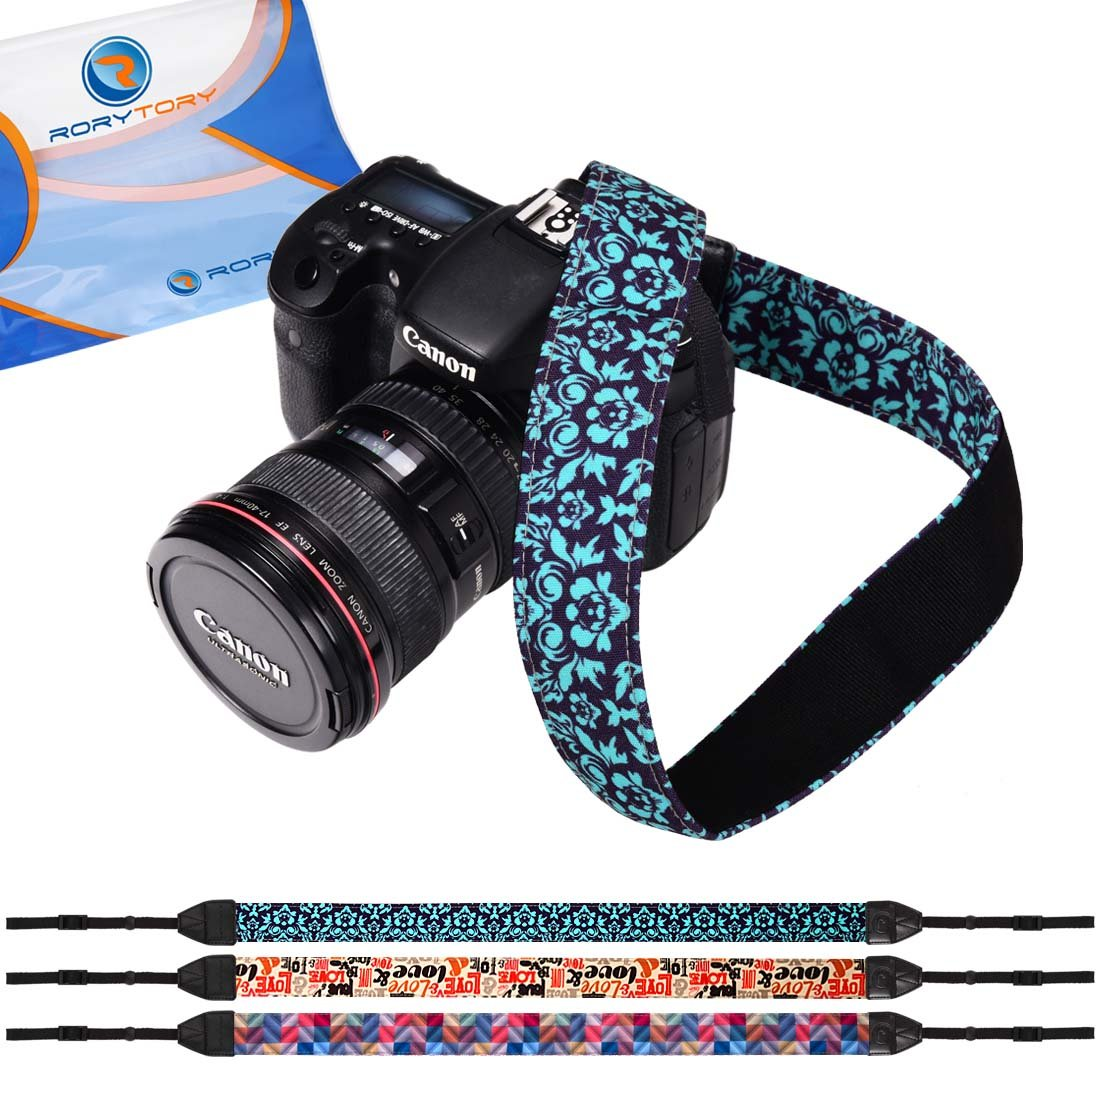 RoryTory 3pc Flower and Quotes Design DSLR Camera Shoulder and Neck Strap Bundle by RoryTory